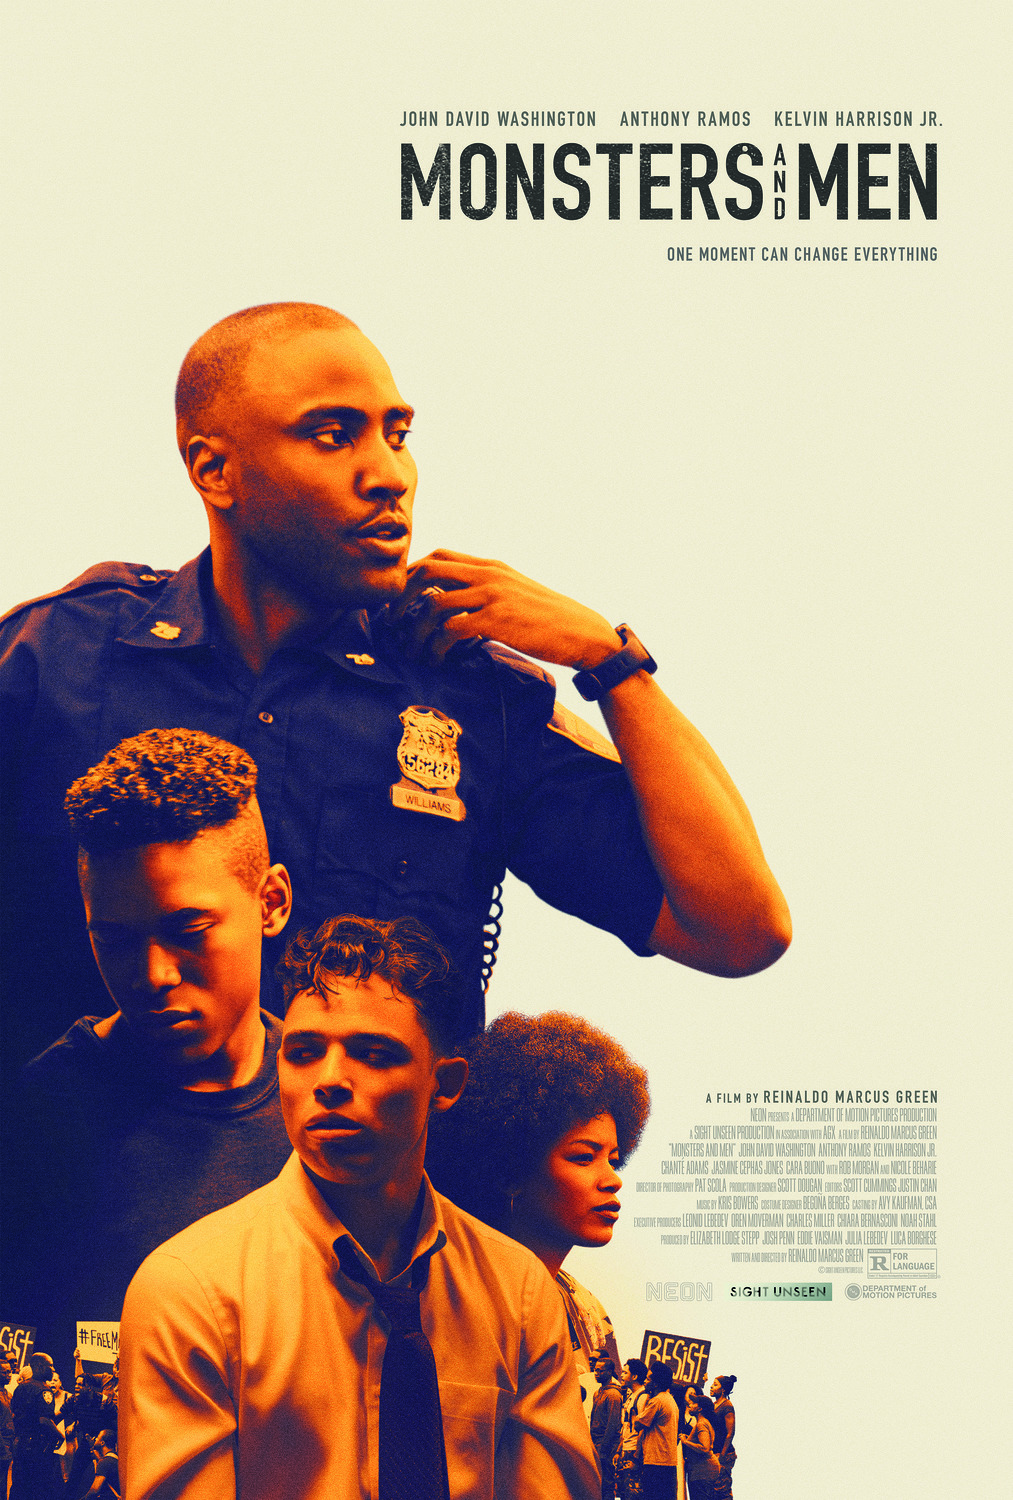 Monsters and Men film poster featuring actors John David Washington, Anthony Ramos and Kelvin Harrison Jr.